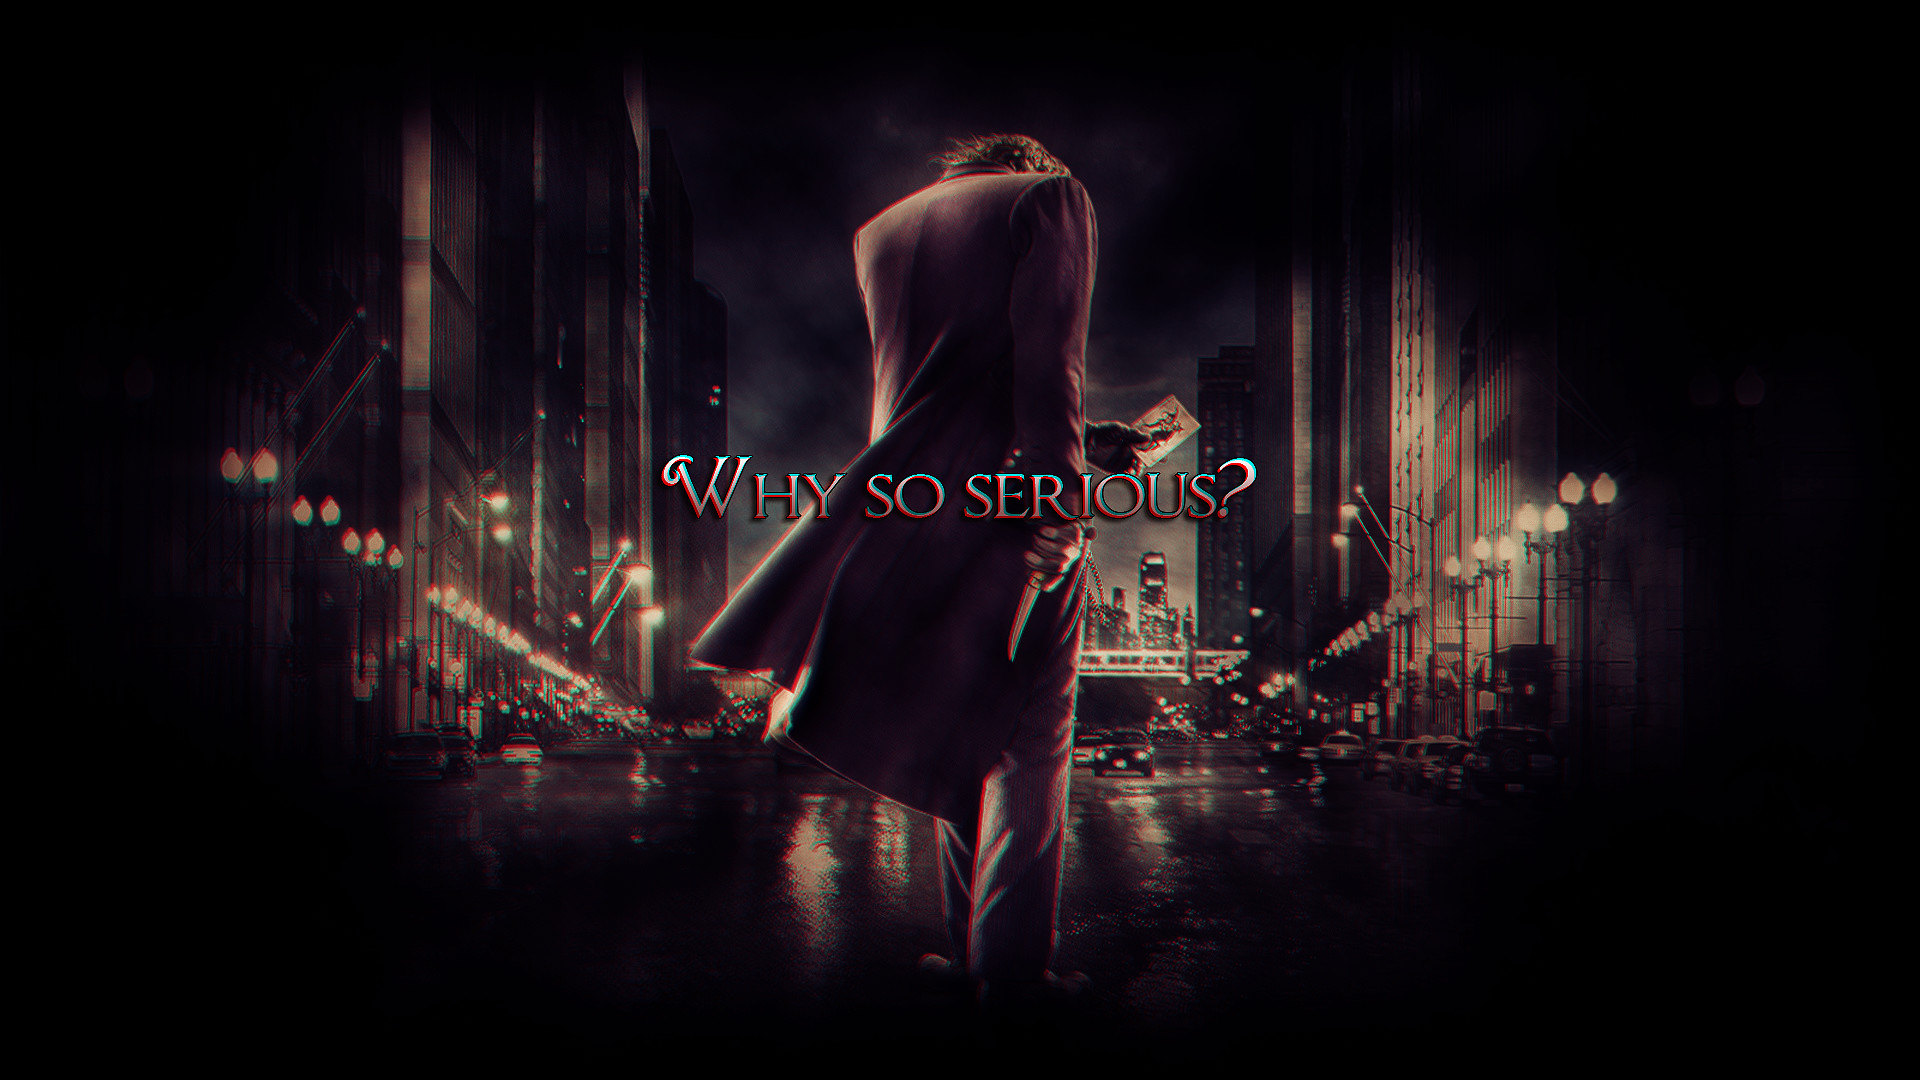 Joker Why So Serious Wallpaper ·①